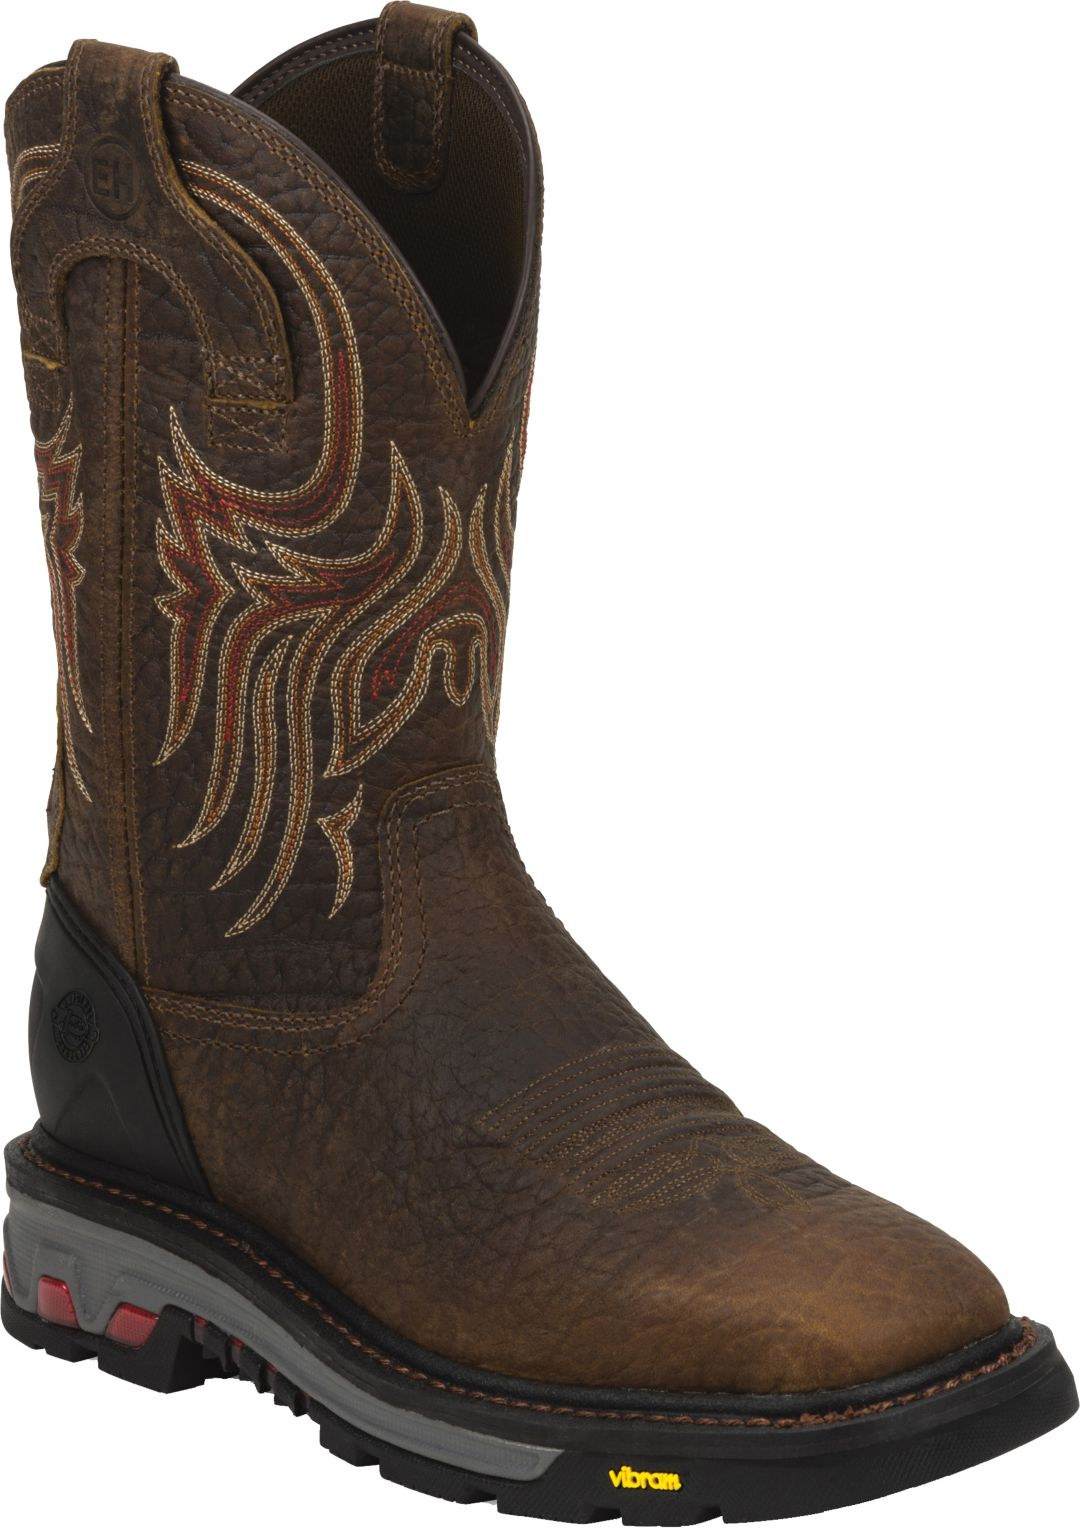 7cc8f6caf47 Justin Men's Pull-On Commander X-5 Square Toe Work Boots